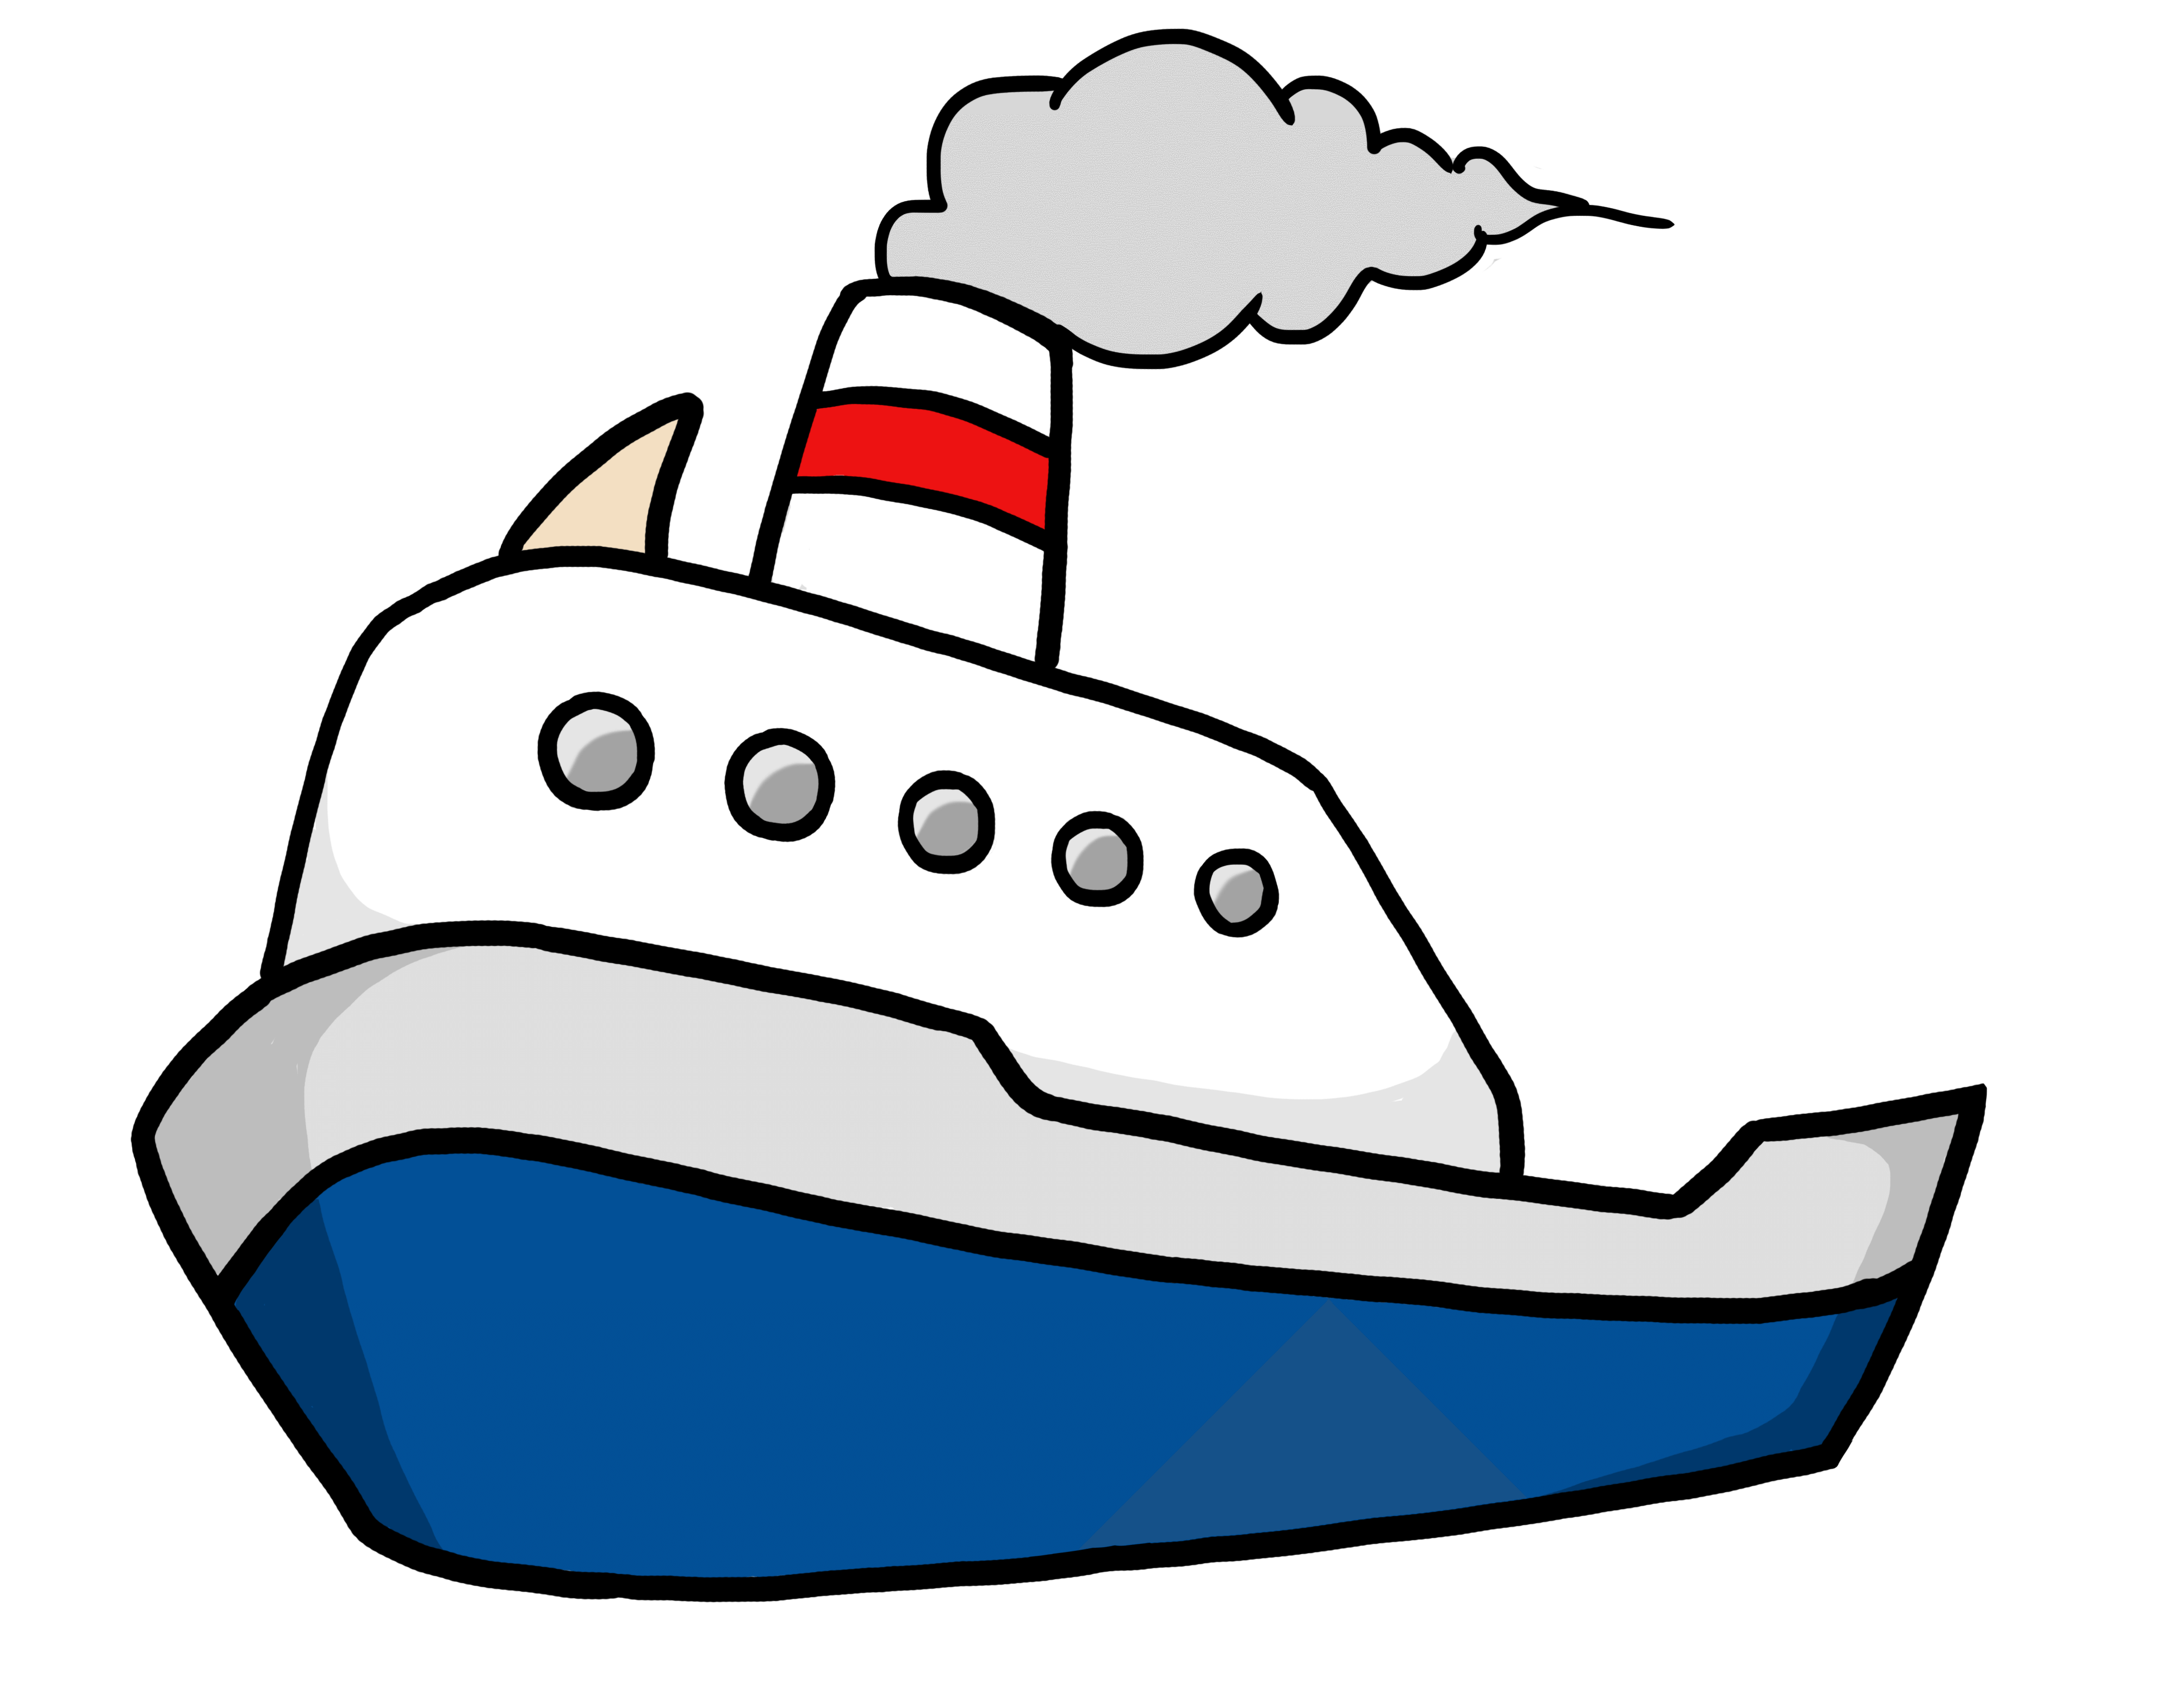 freeuse library Speed silhouette at getdrawings. Vector boat abstract